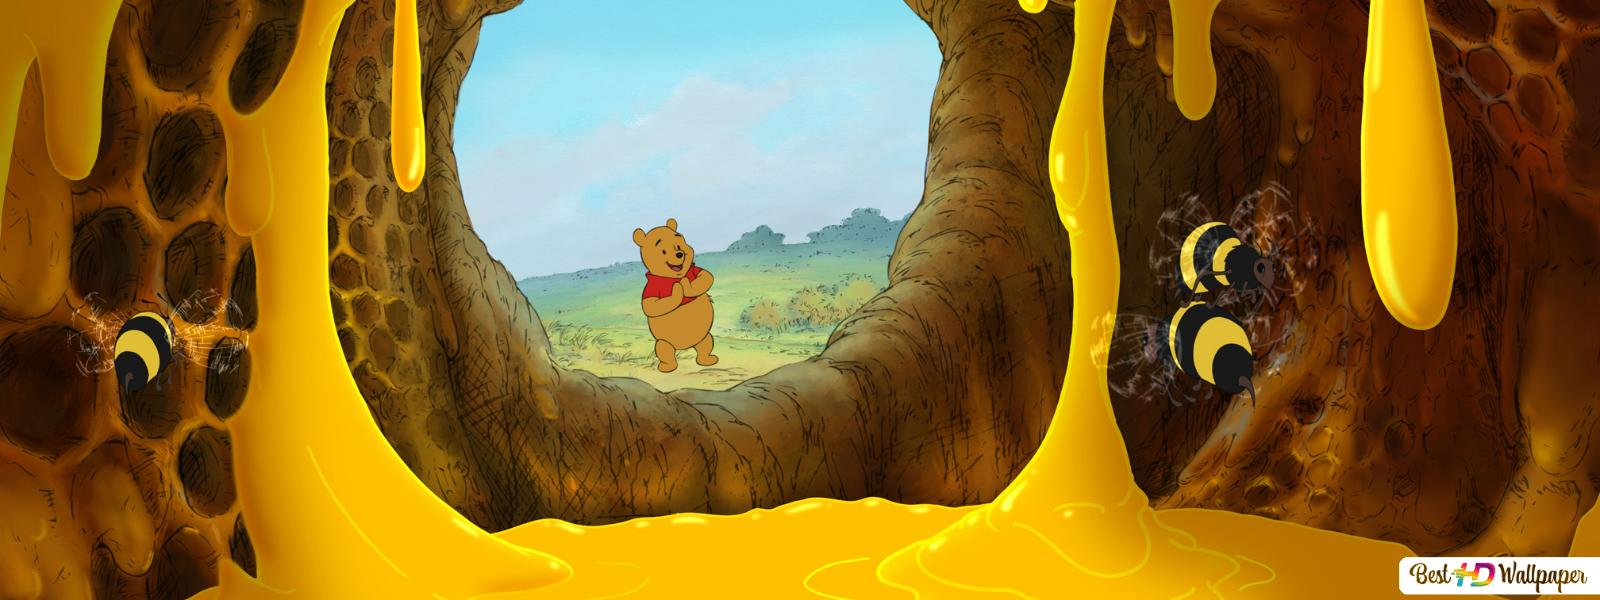 Winnie The Pooh Hd Wallpaper Download